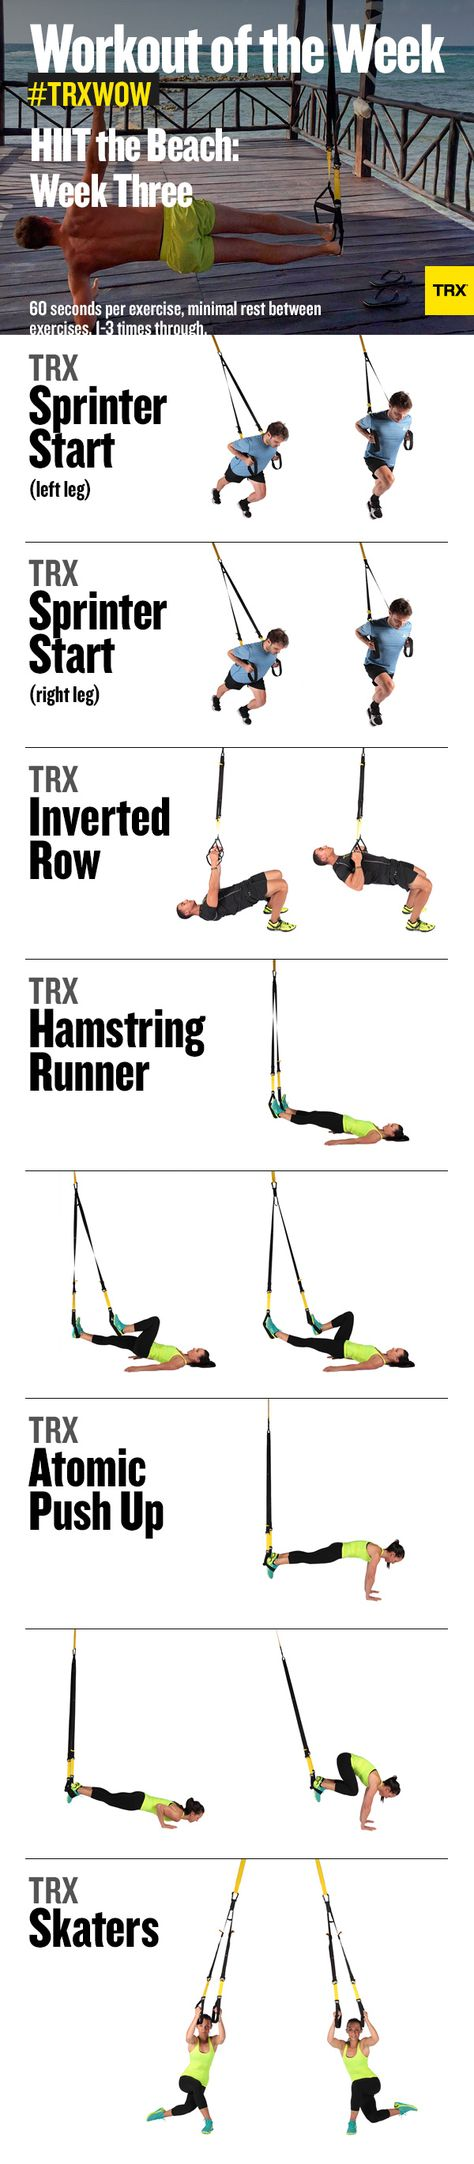 TRX Workout of the Week: Crank up the heat on your summer body with this short…